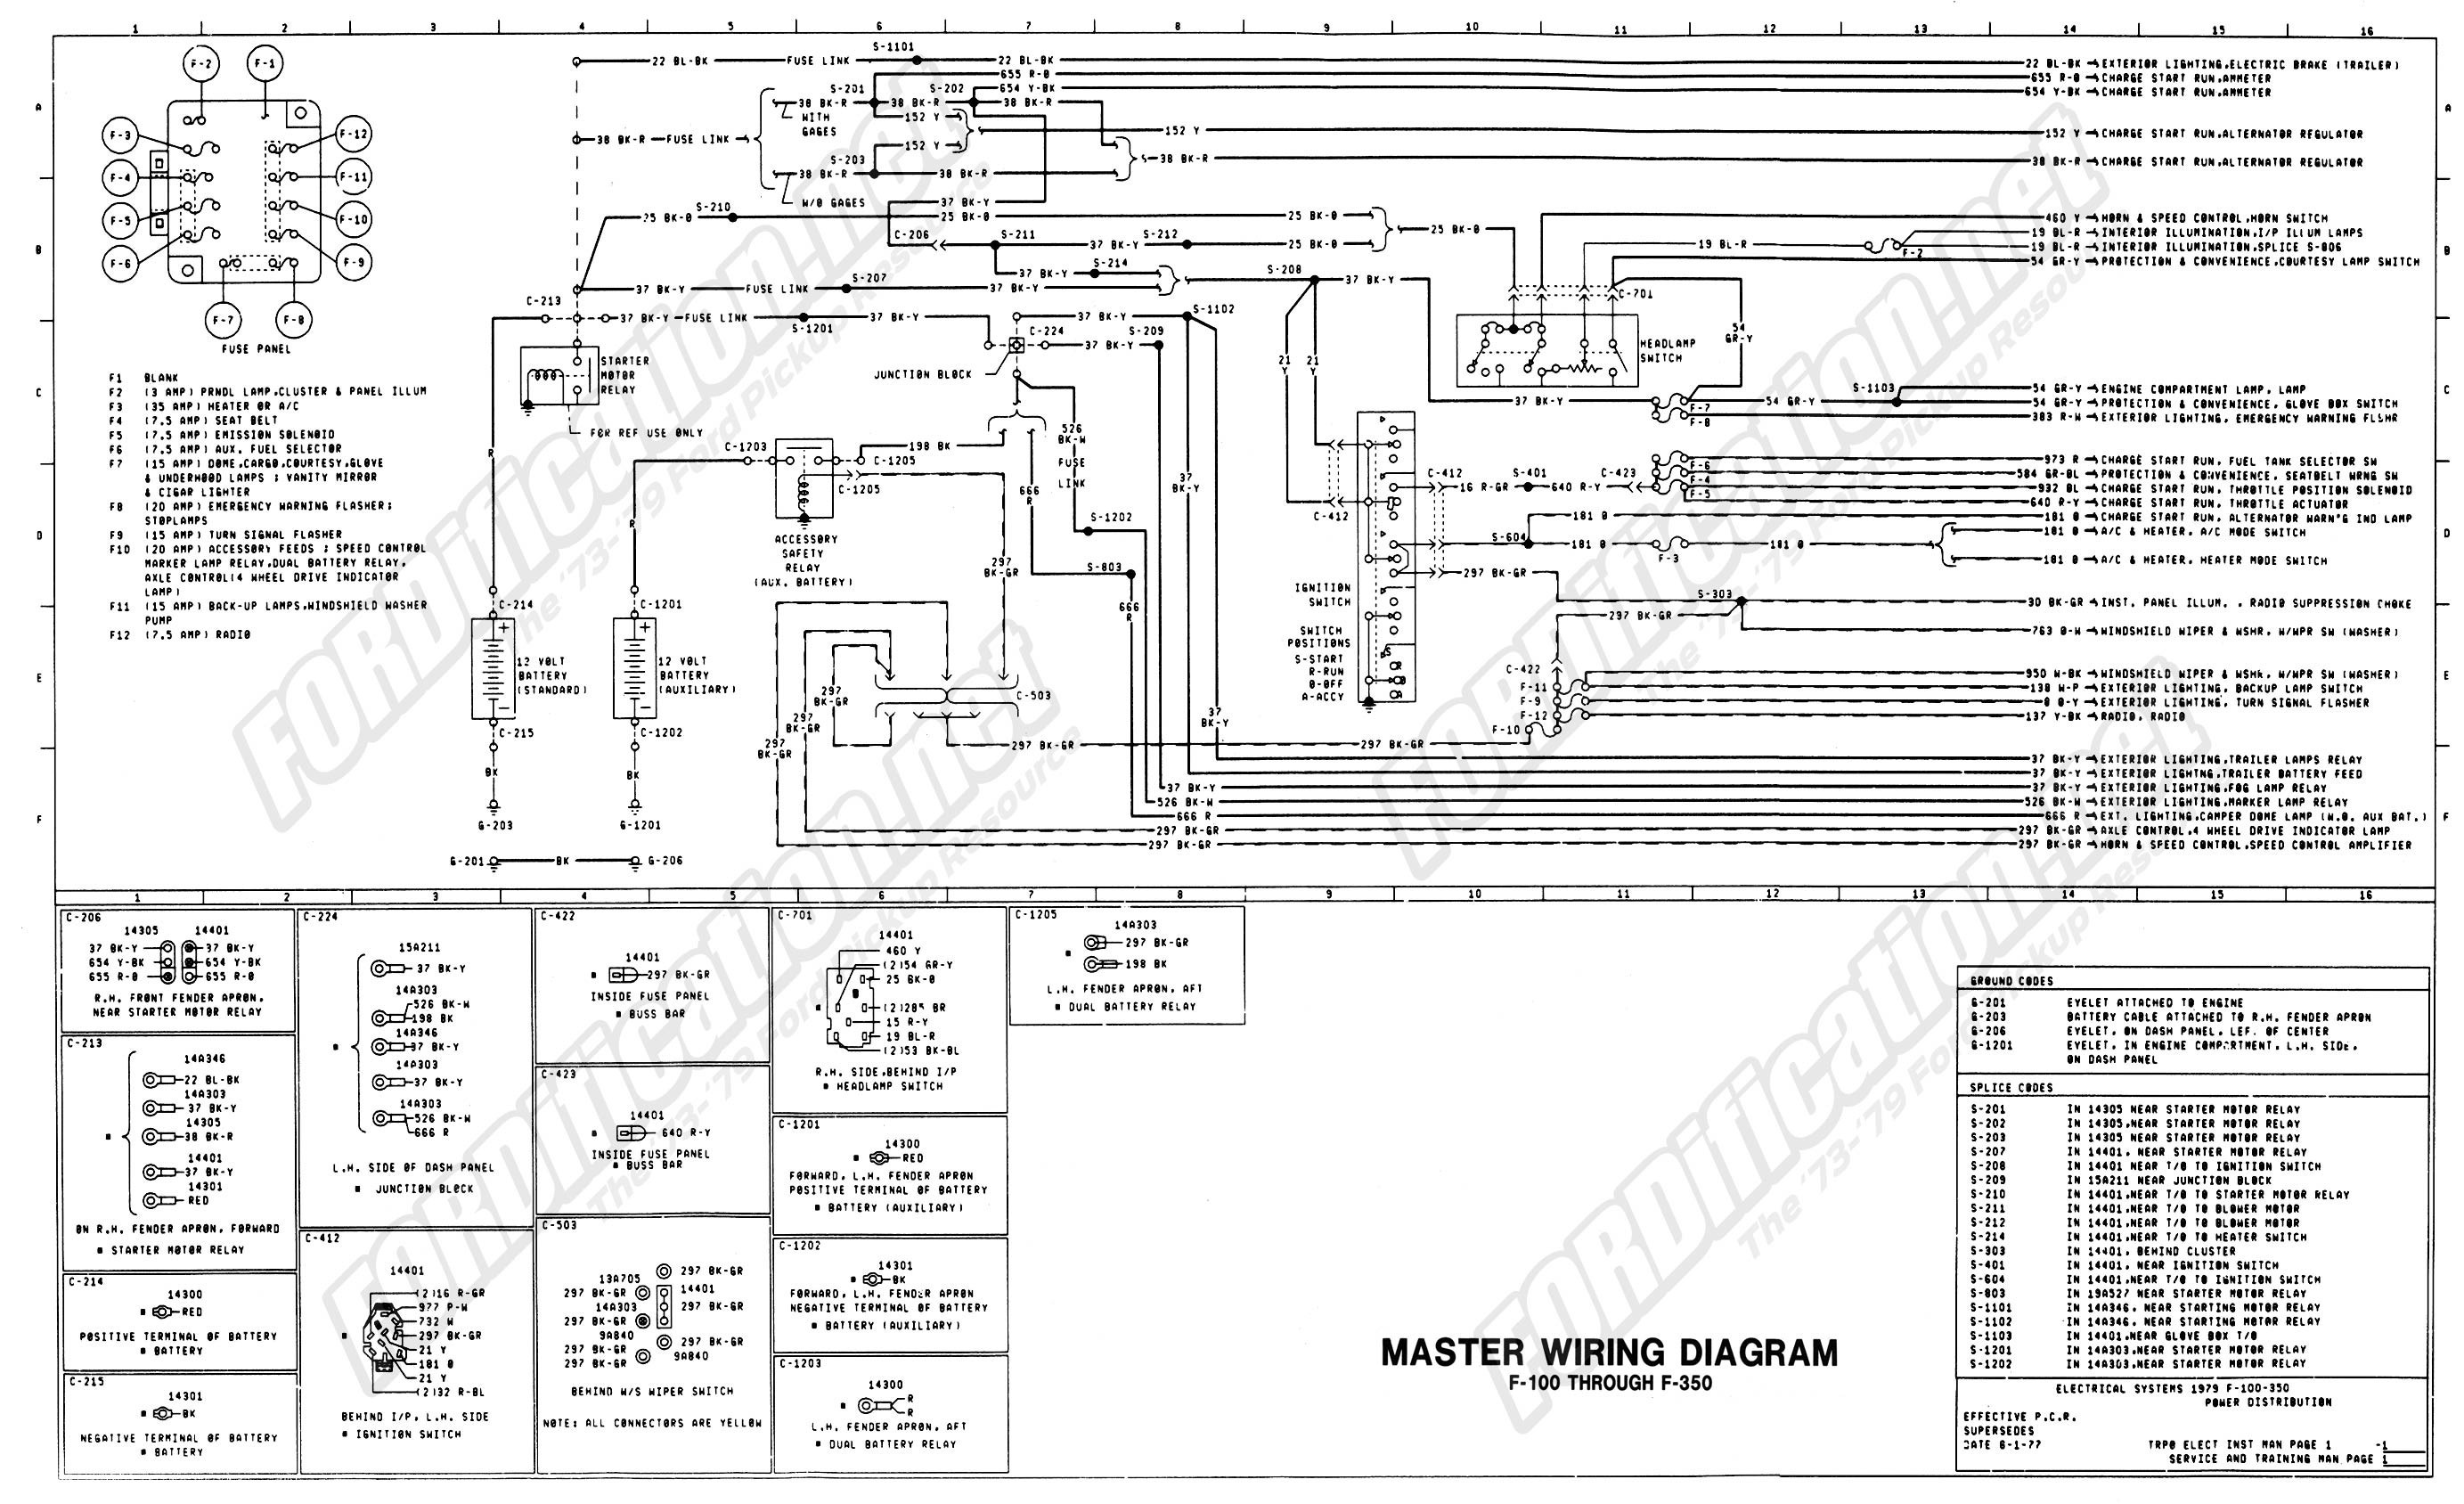 2006 Silverado Tail Light Wiring Diagram Explained Diagrams Image Chevy Impala